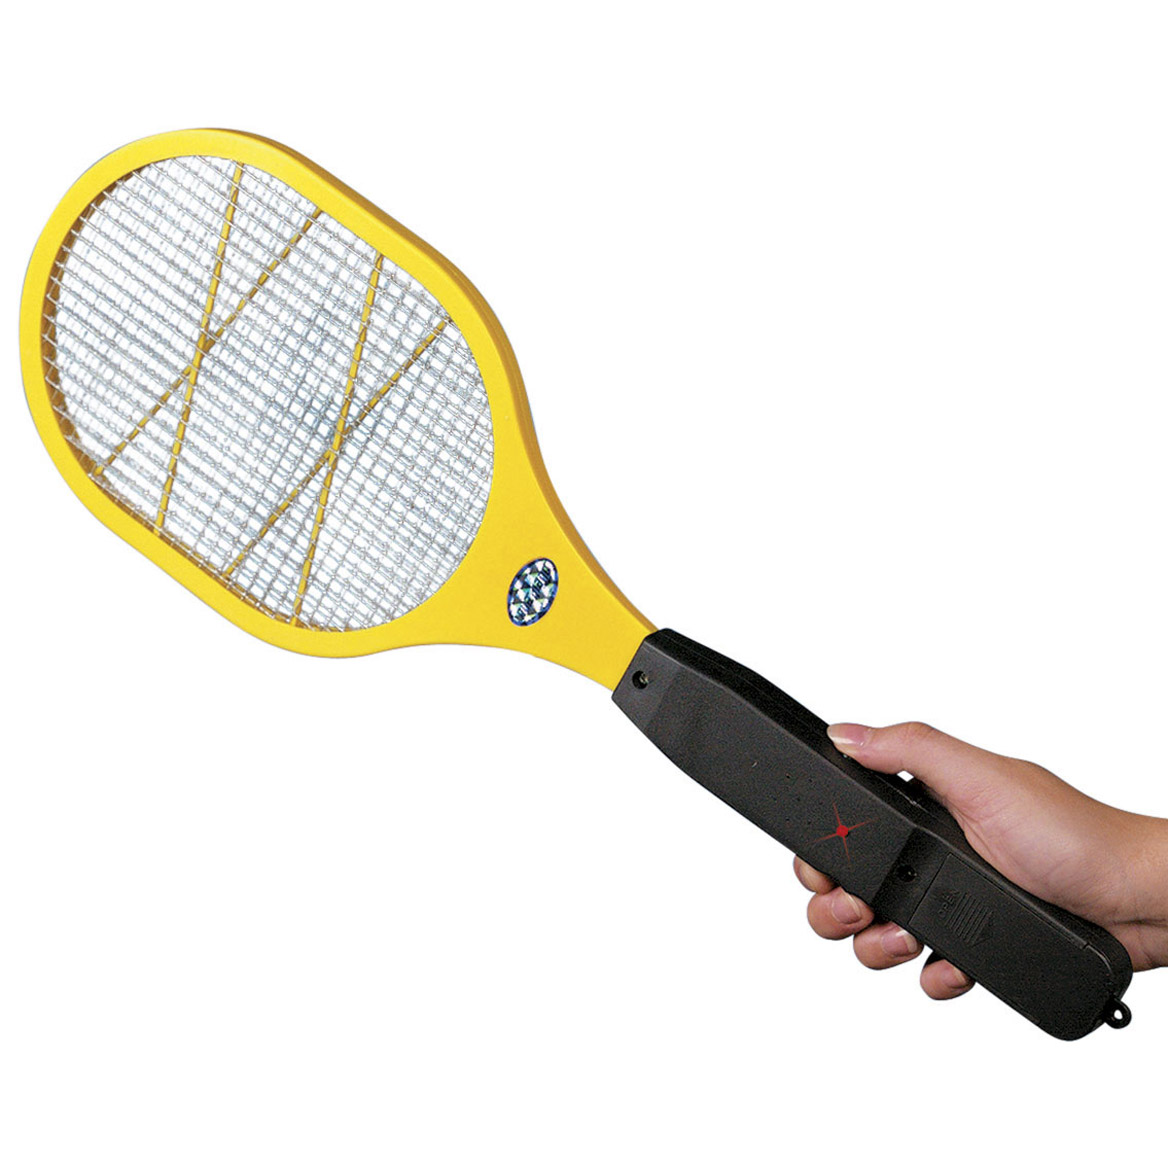 Insect Repellent Bracelet Bug Walter Drake Bite Fighters Mosquito Lotion Rolling Ball Electronic Zapper Racket